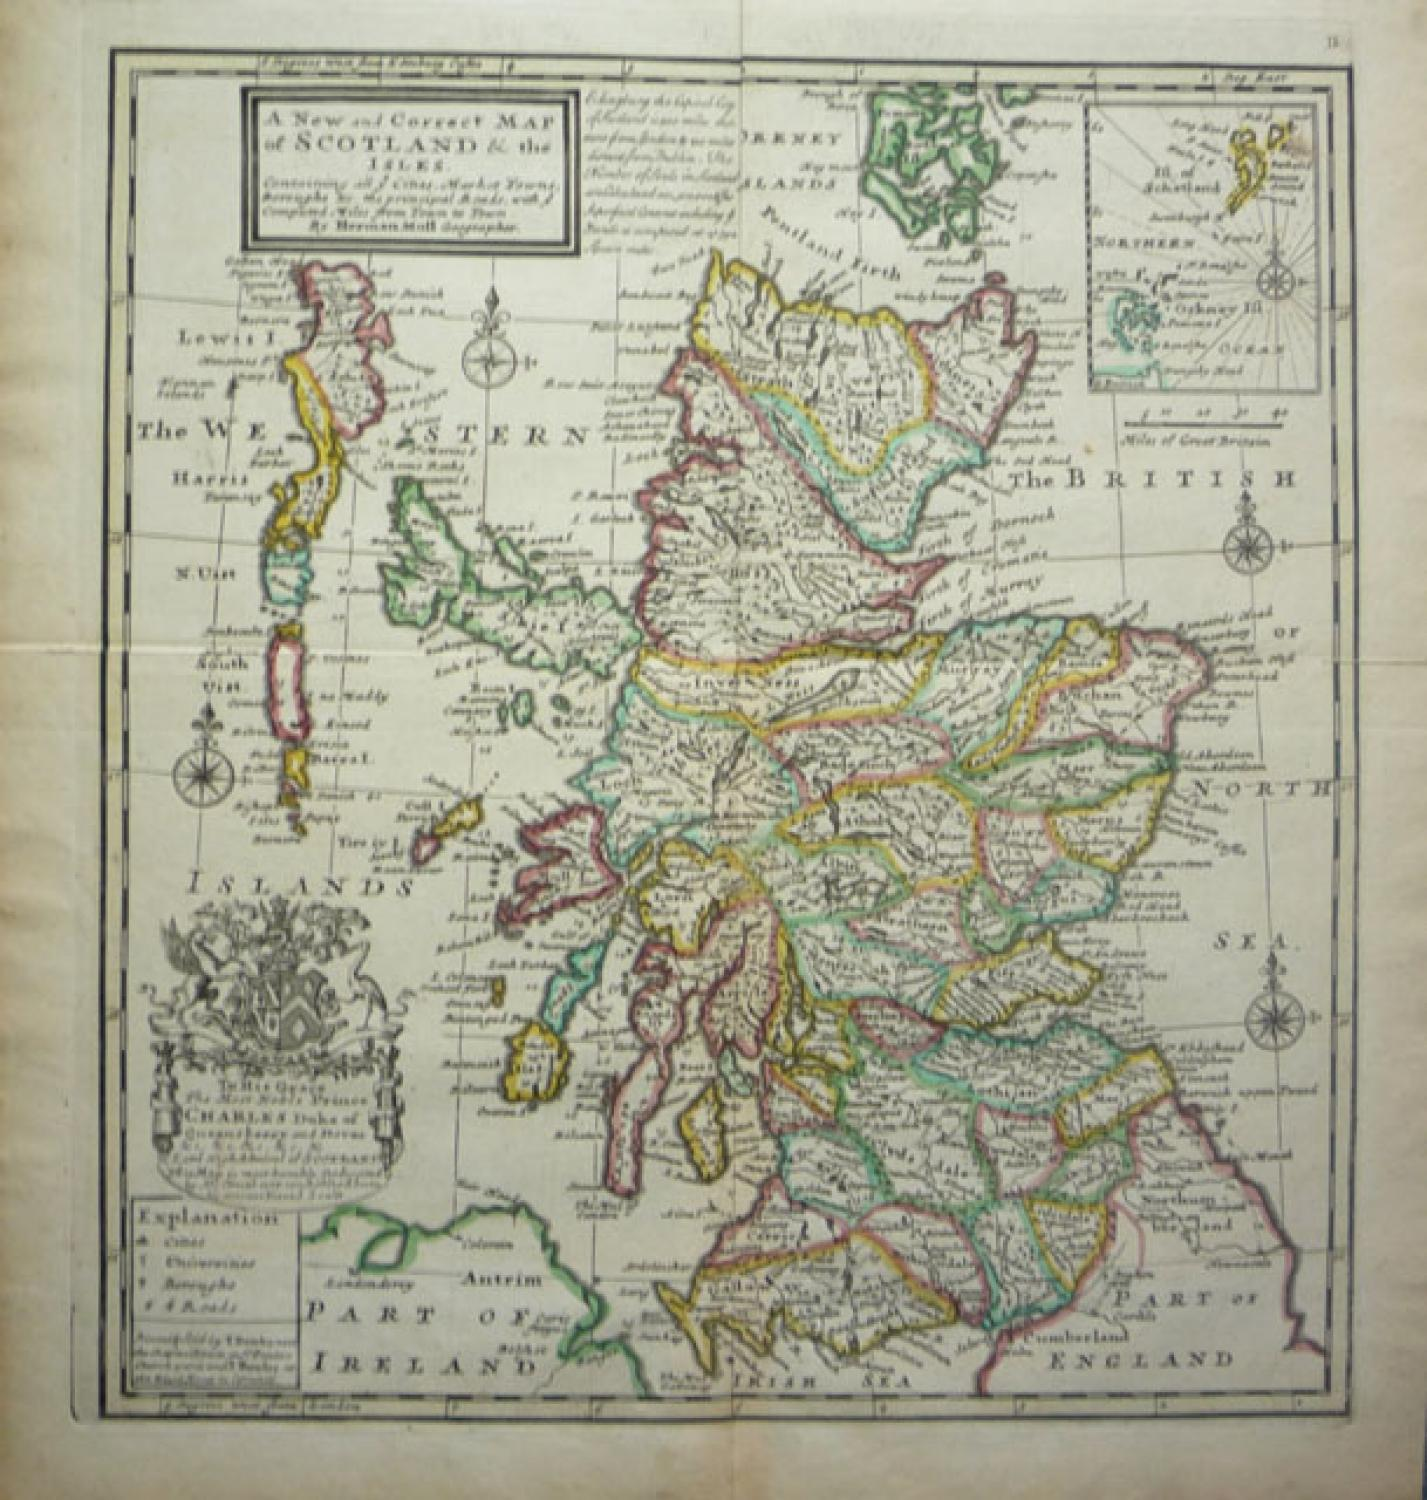 Moll  new correct map of Scotland & the Isles